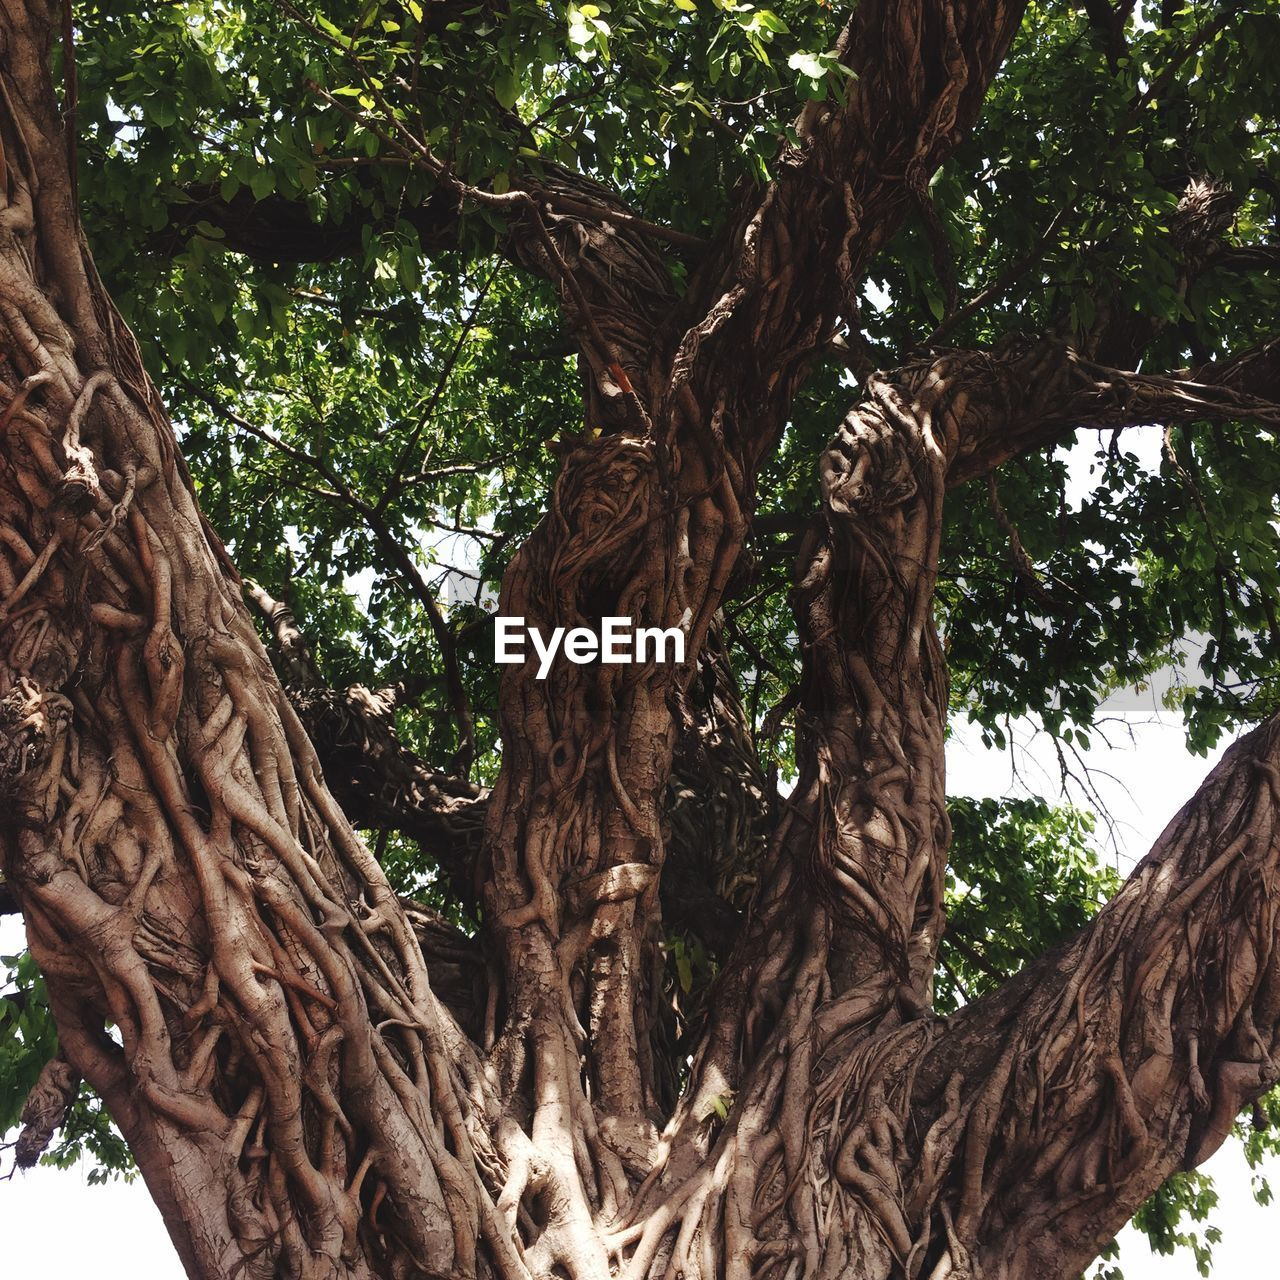 tree, plant, trunk, tree trunk, growth, day, low angle view, no people, nature, branch, forest, brown, outdoors, tranquility, beauty in nature, textured, tropical climate, focus on foreground, plant part, root